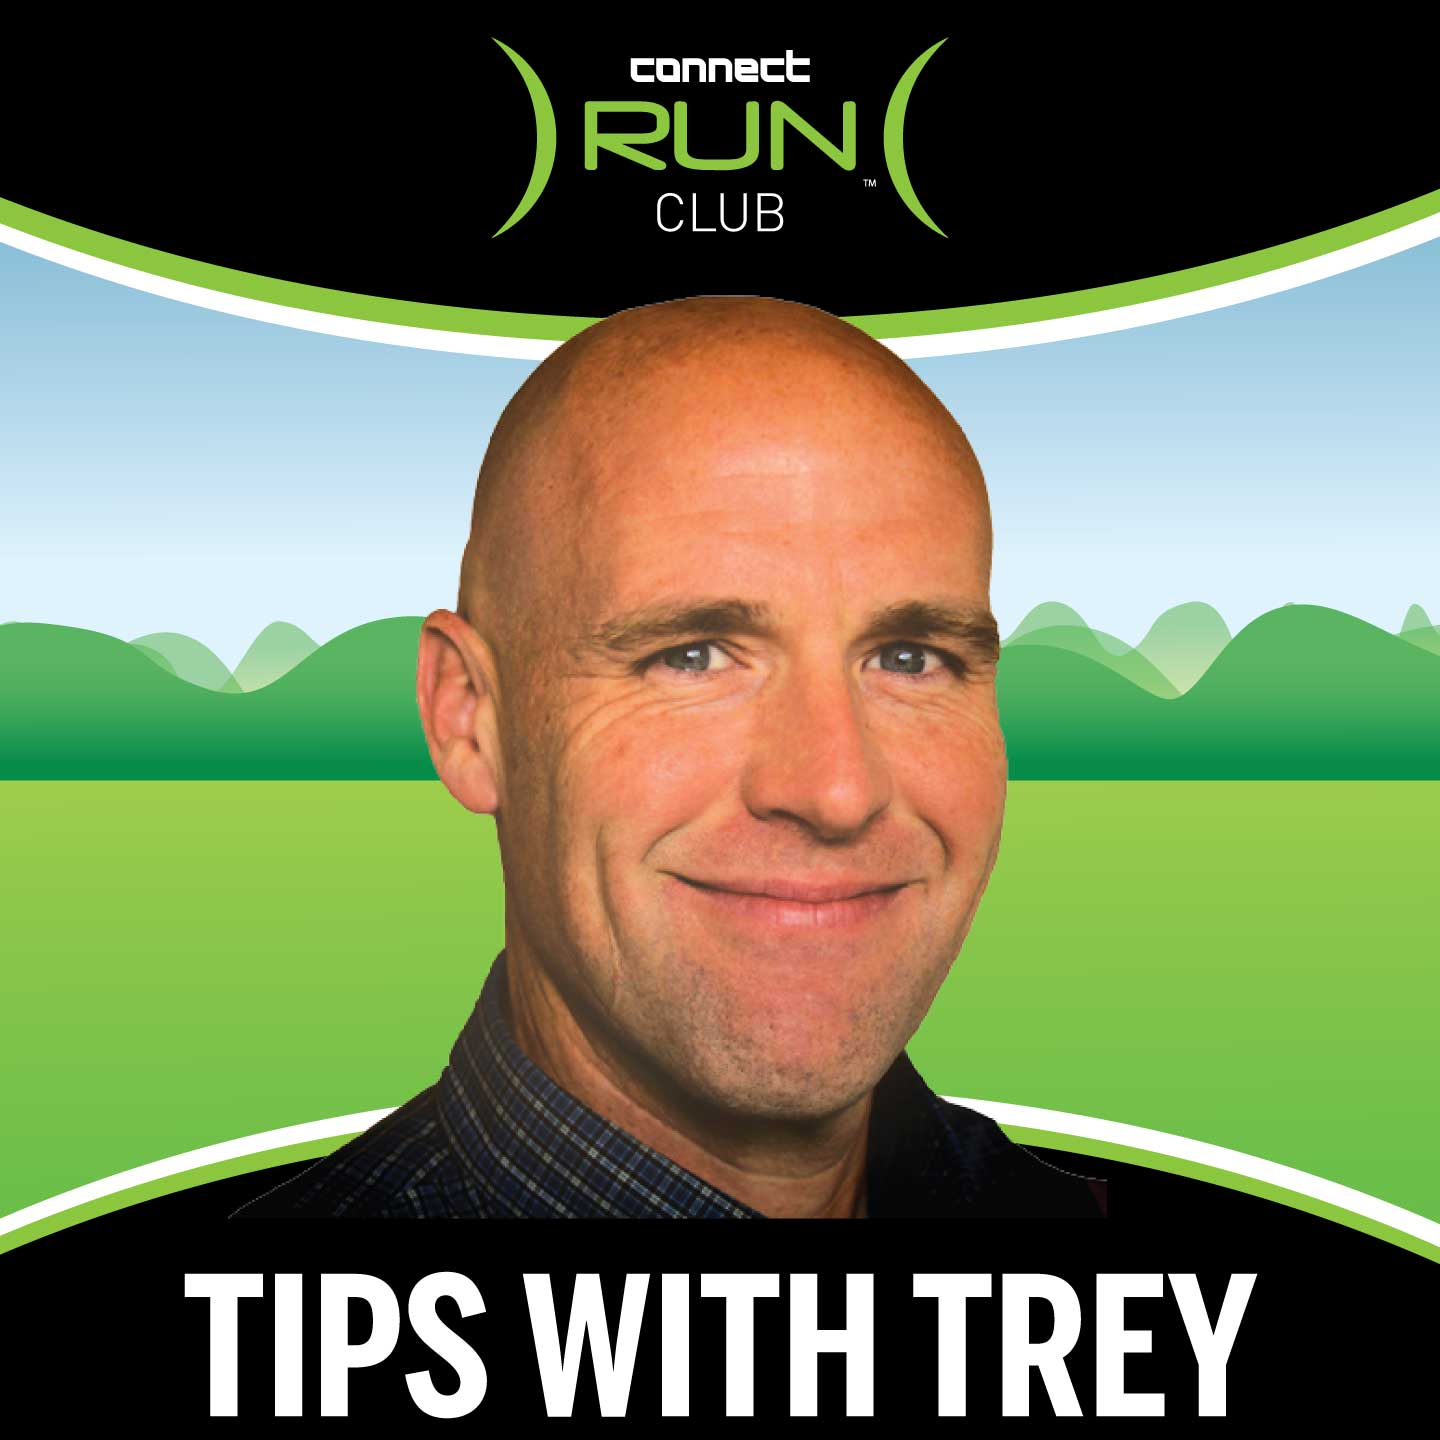 Tips With Trey:  Running Tips | Training Advice | Coaching - Connect Run Club